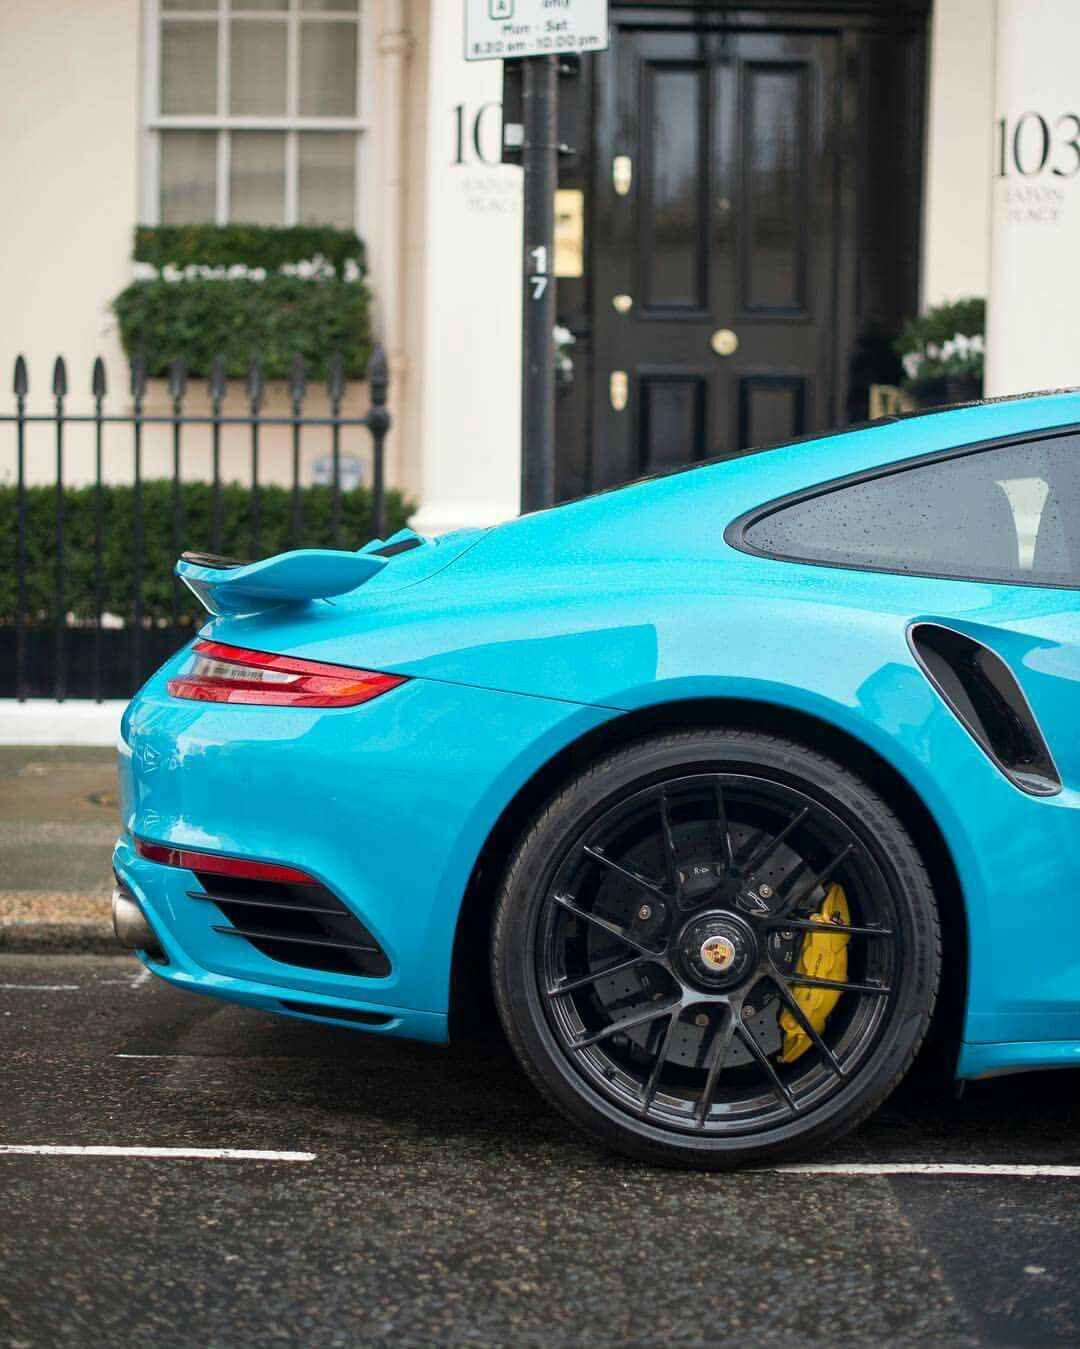 Awesome 991.2 Turbo S